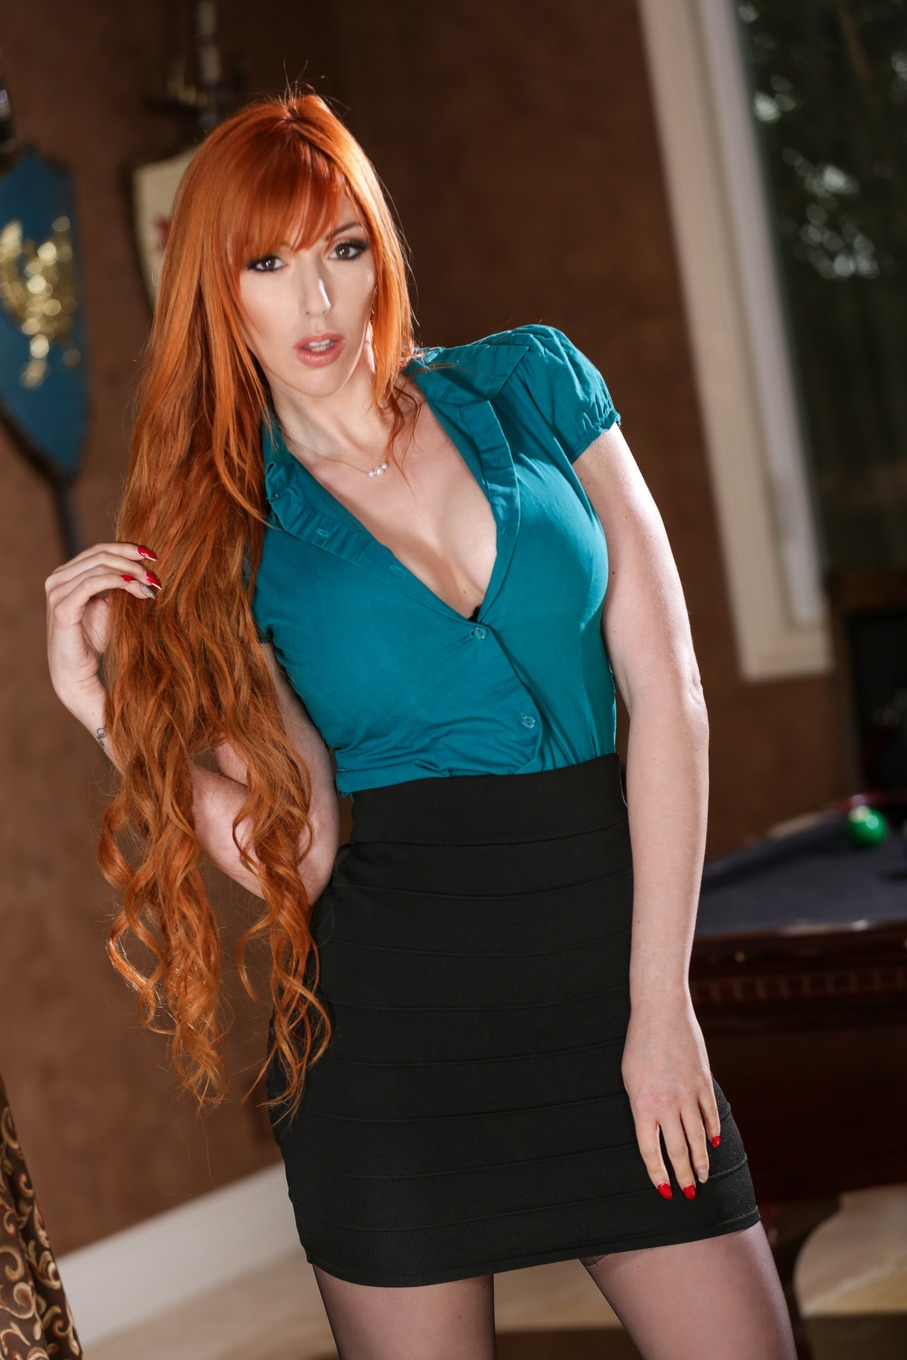 LaurenPhillips - profile image - 3